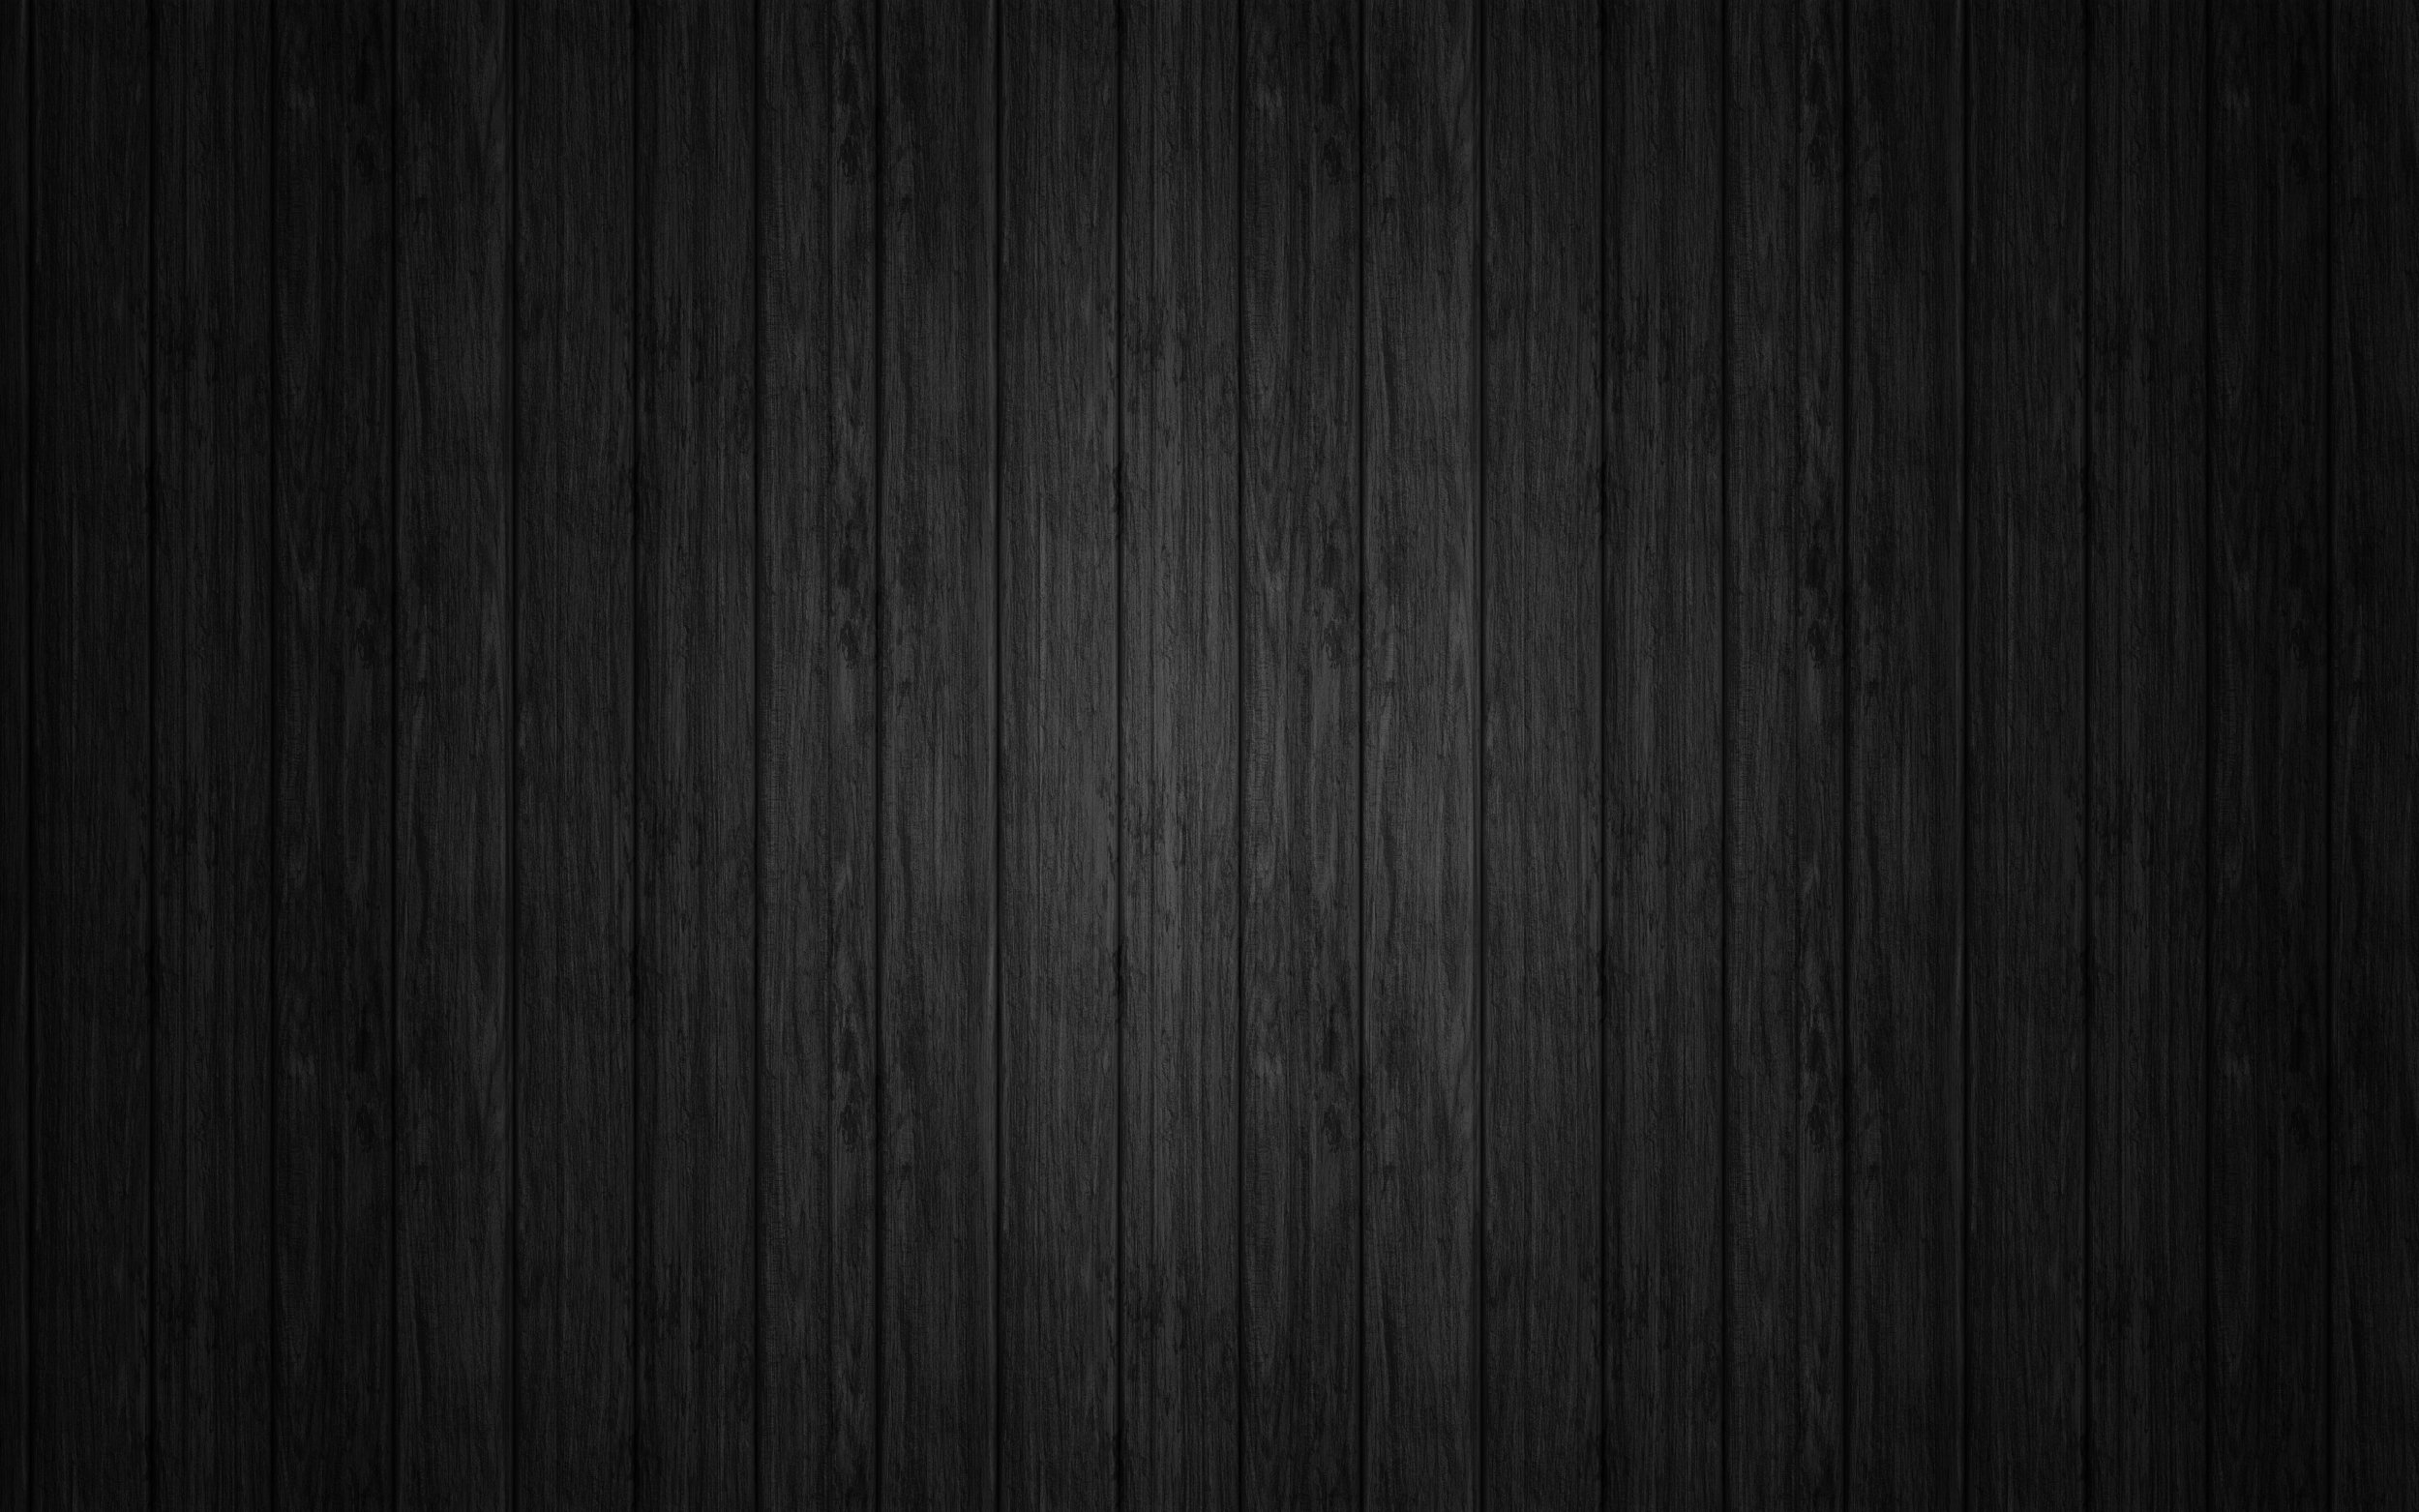 6785877-dark-background-pictures.jpg